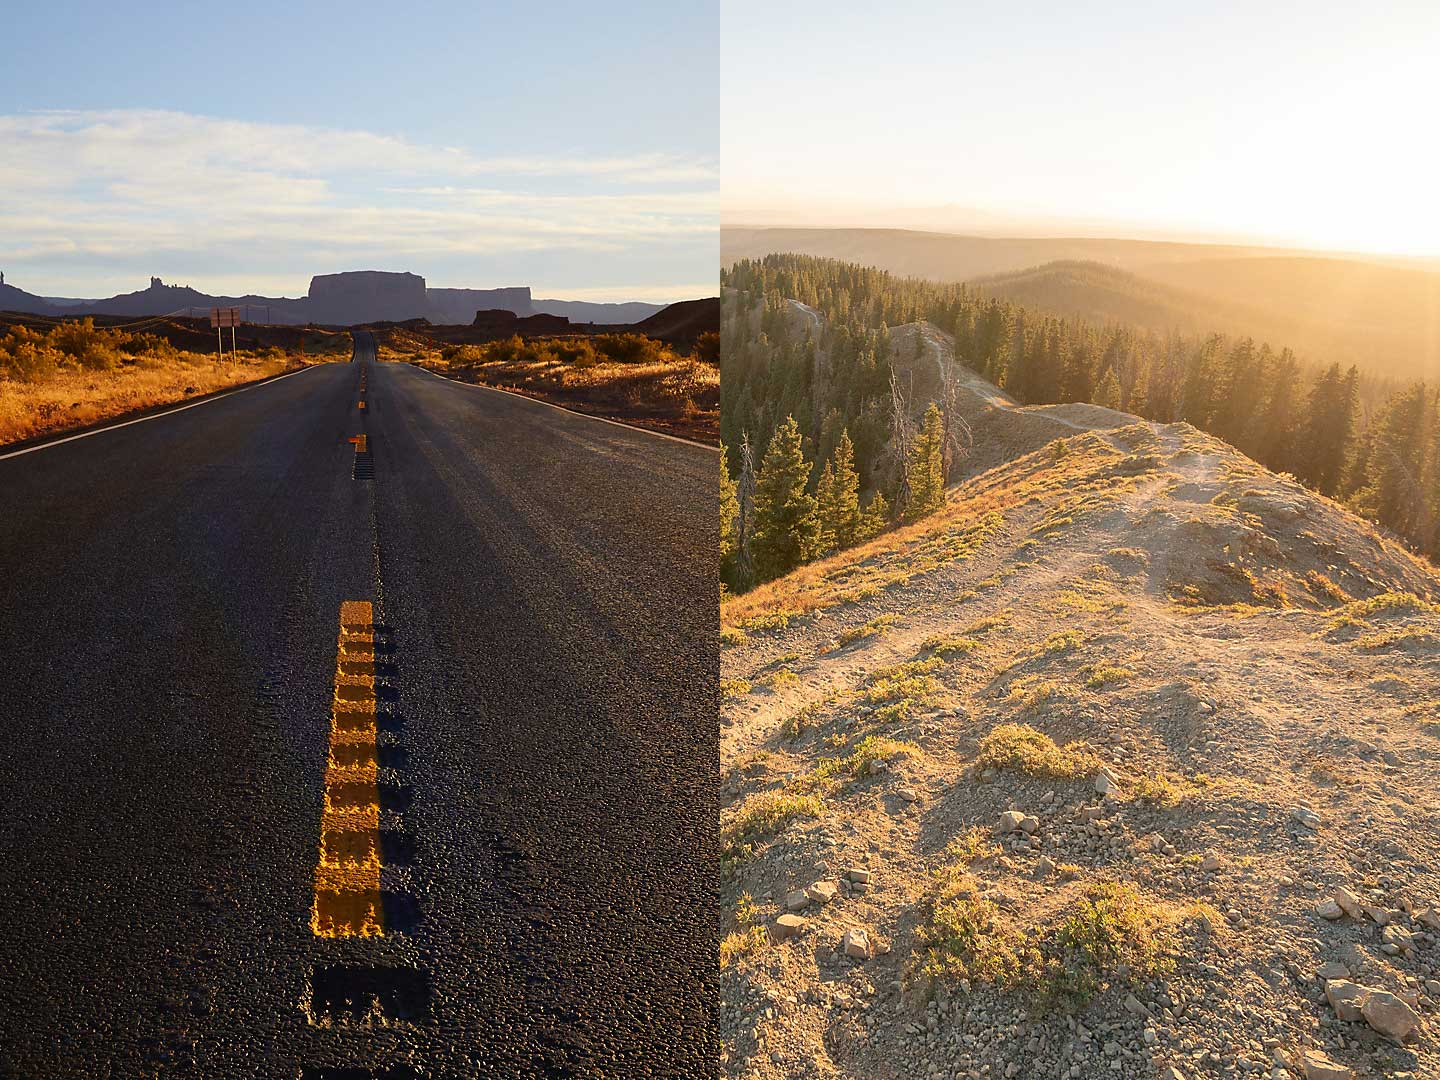 Road or Mountain